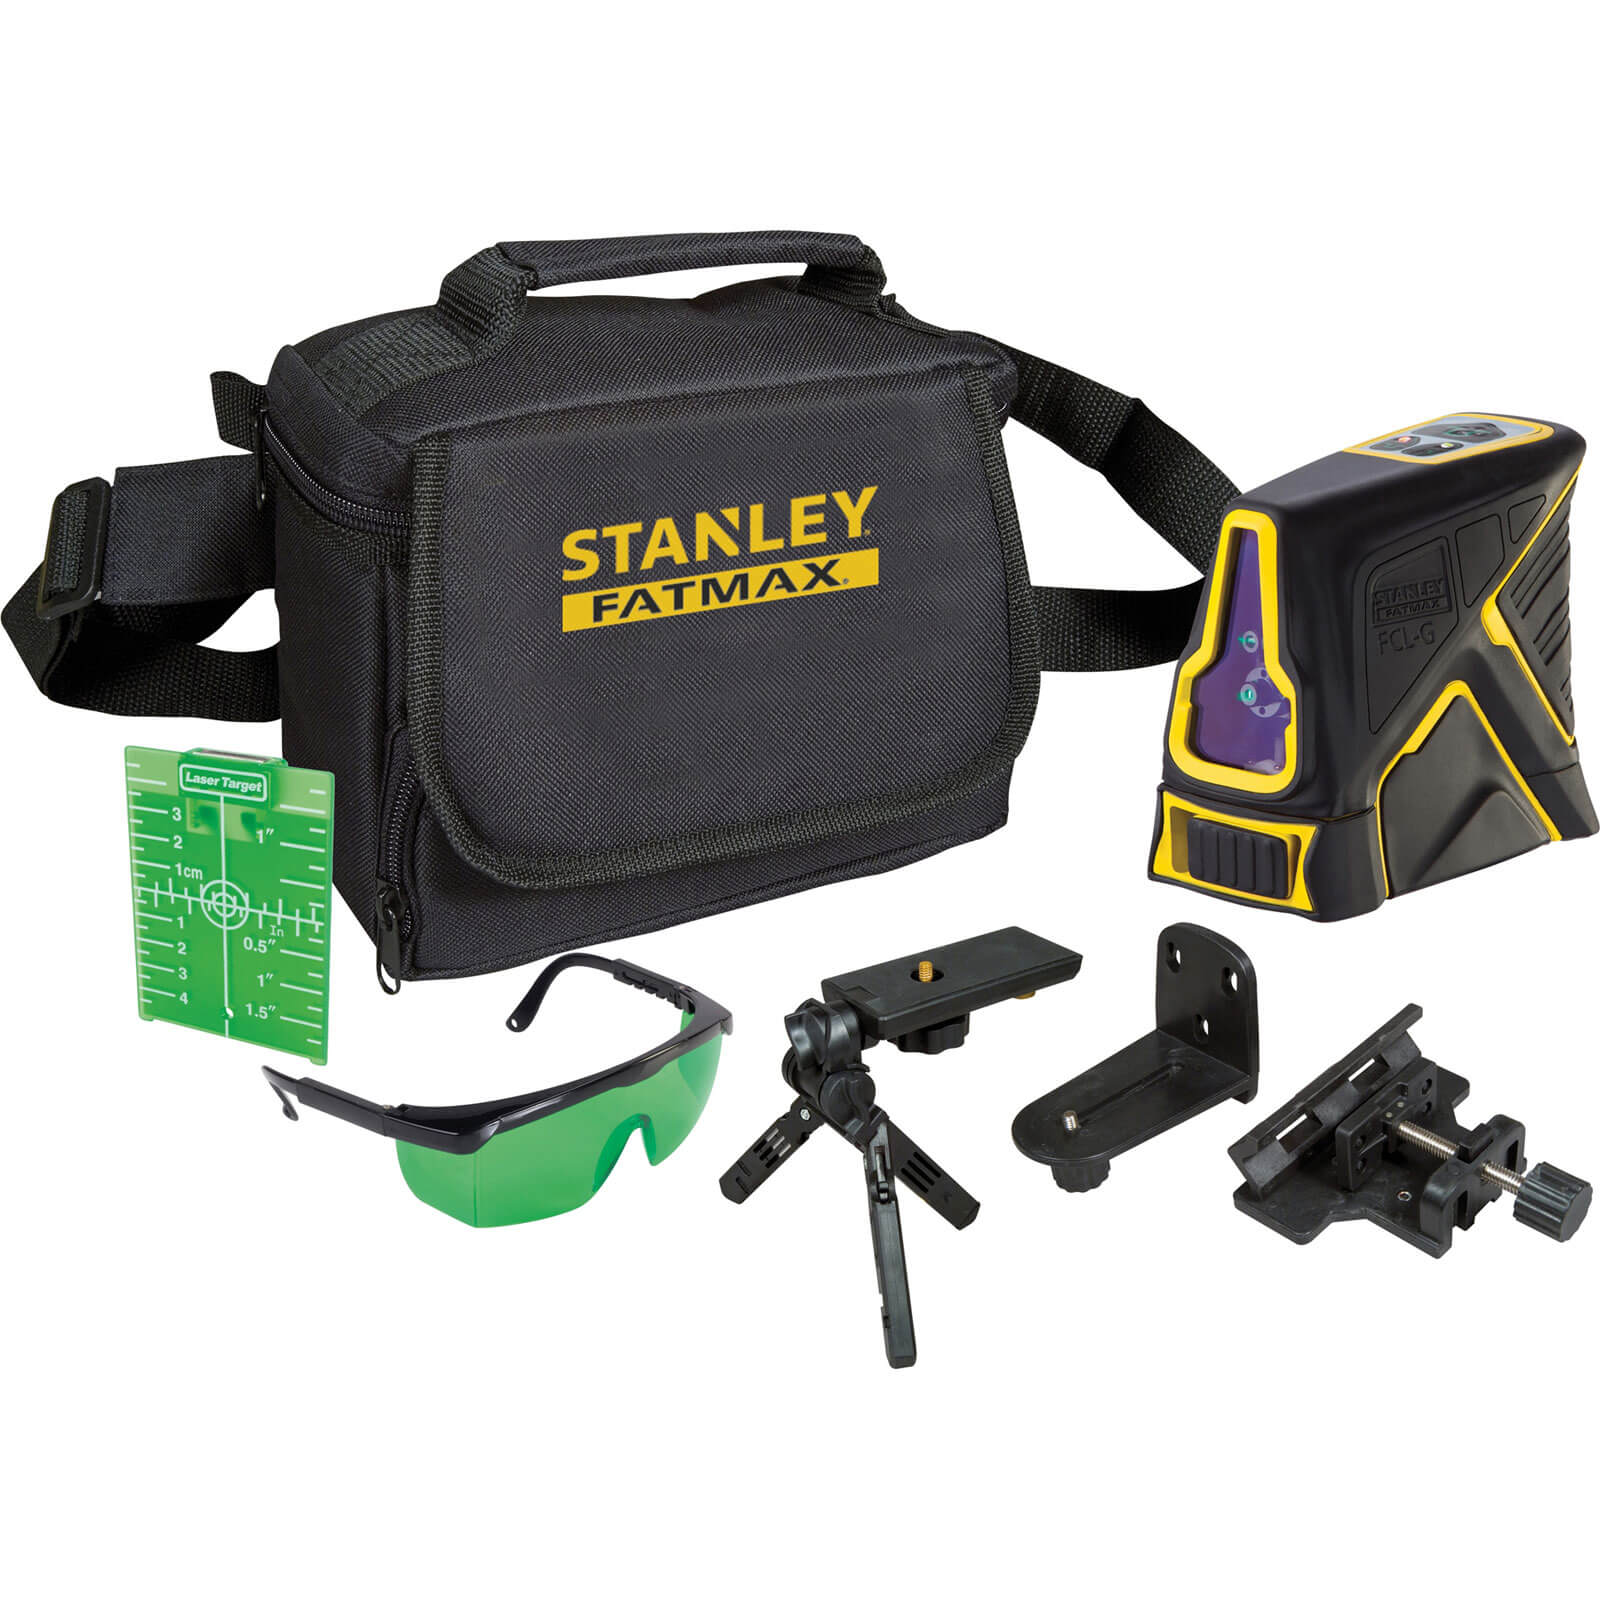 stanley fatmax green beam self levelling laser level. Black Bedroom Furniture Sets. Home Design Ideas